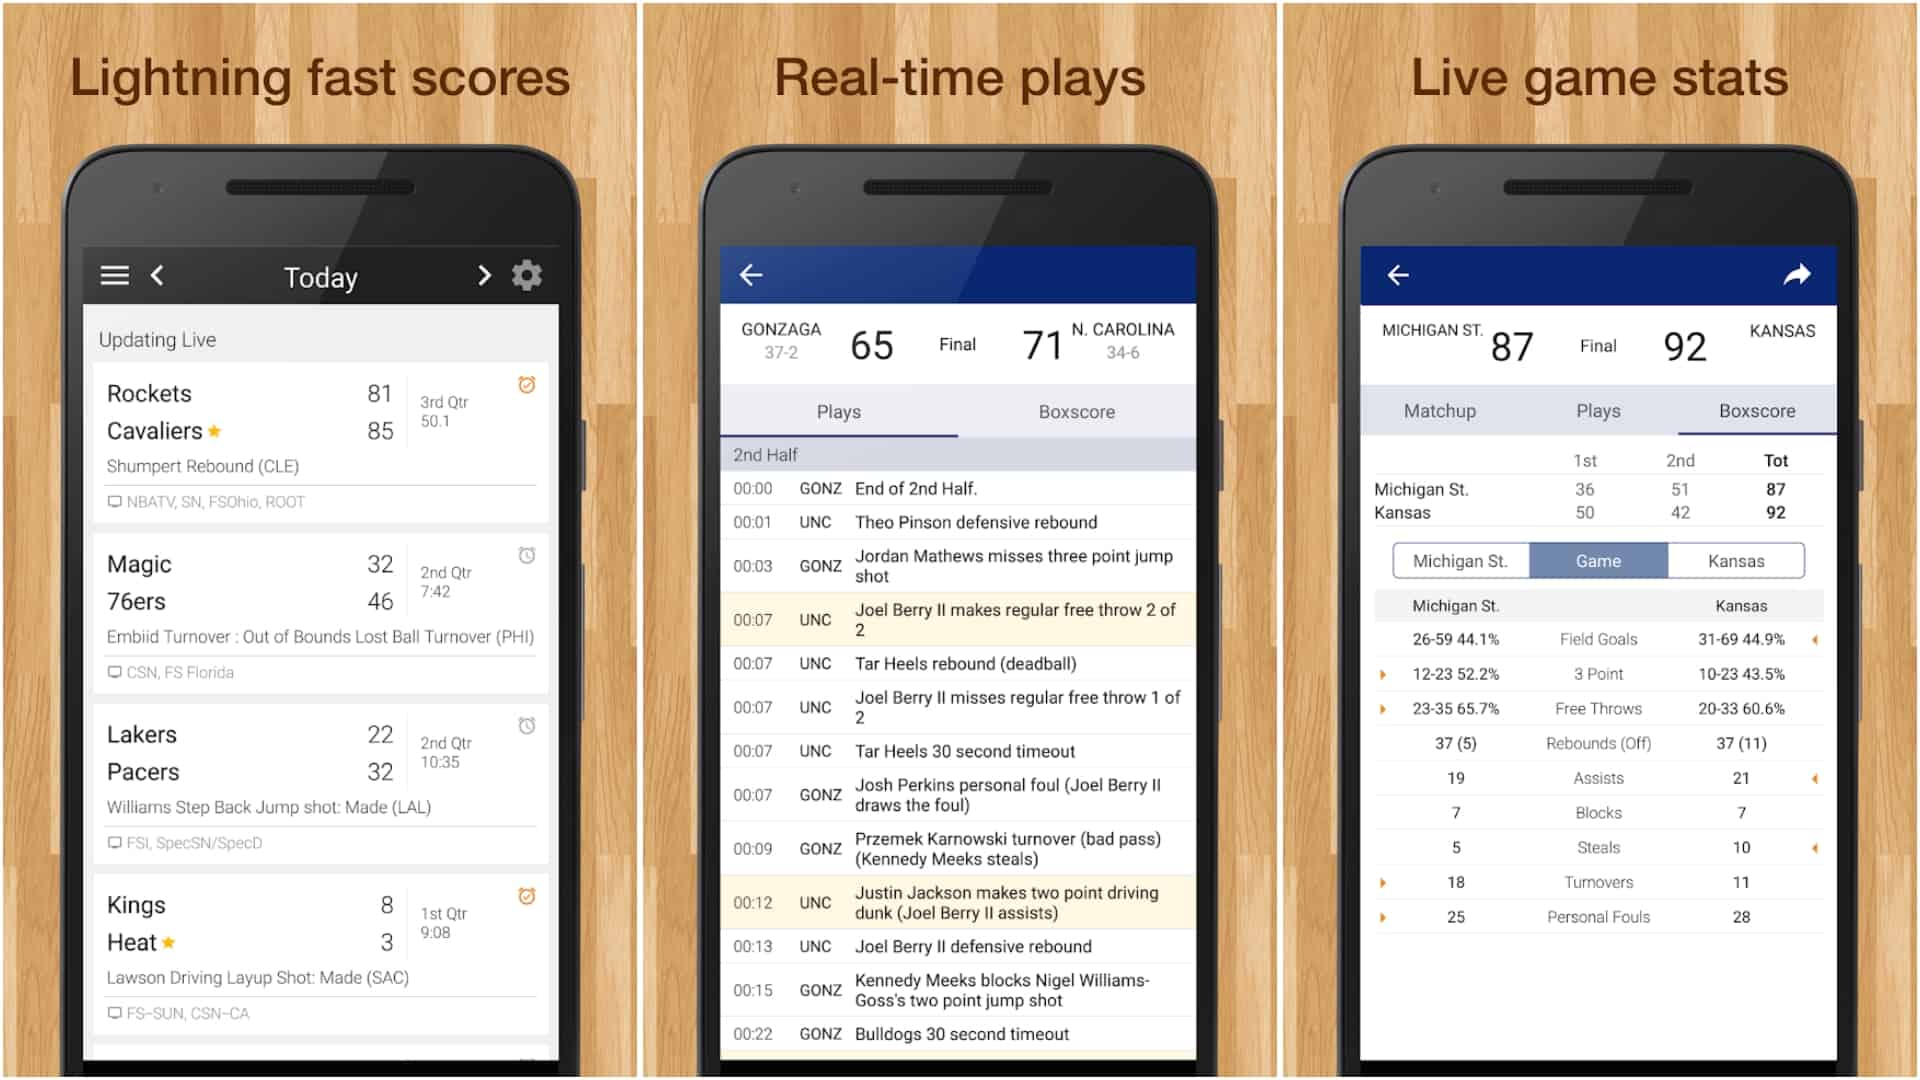 College Basketball Live Scores Plays Schedules app image March 2020